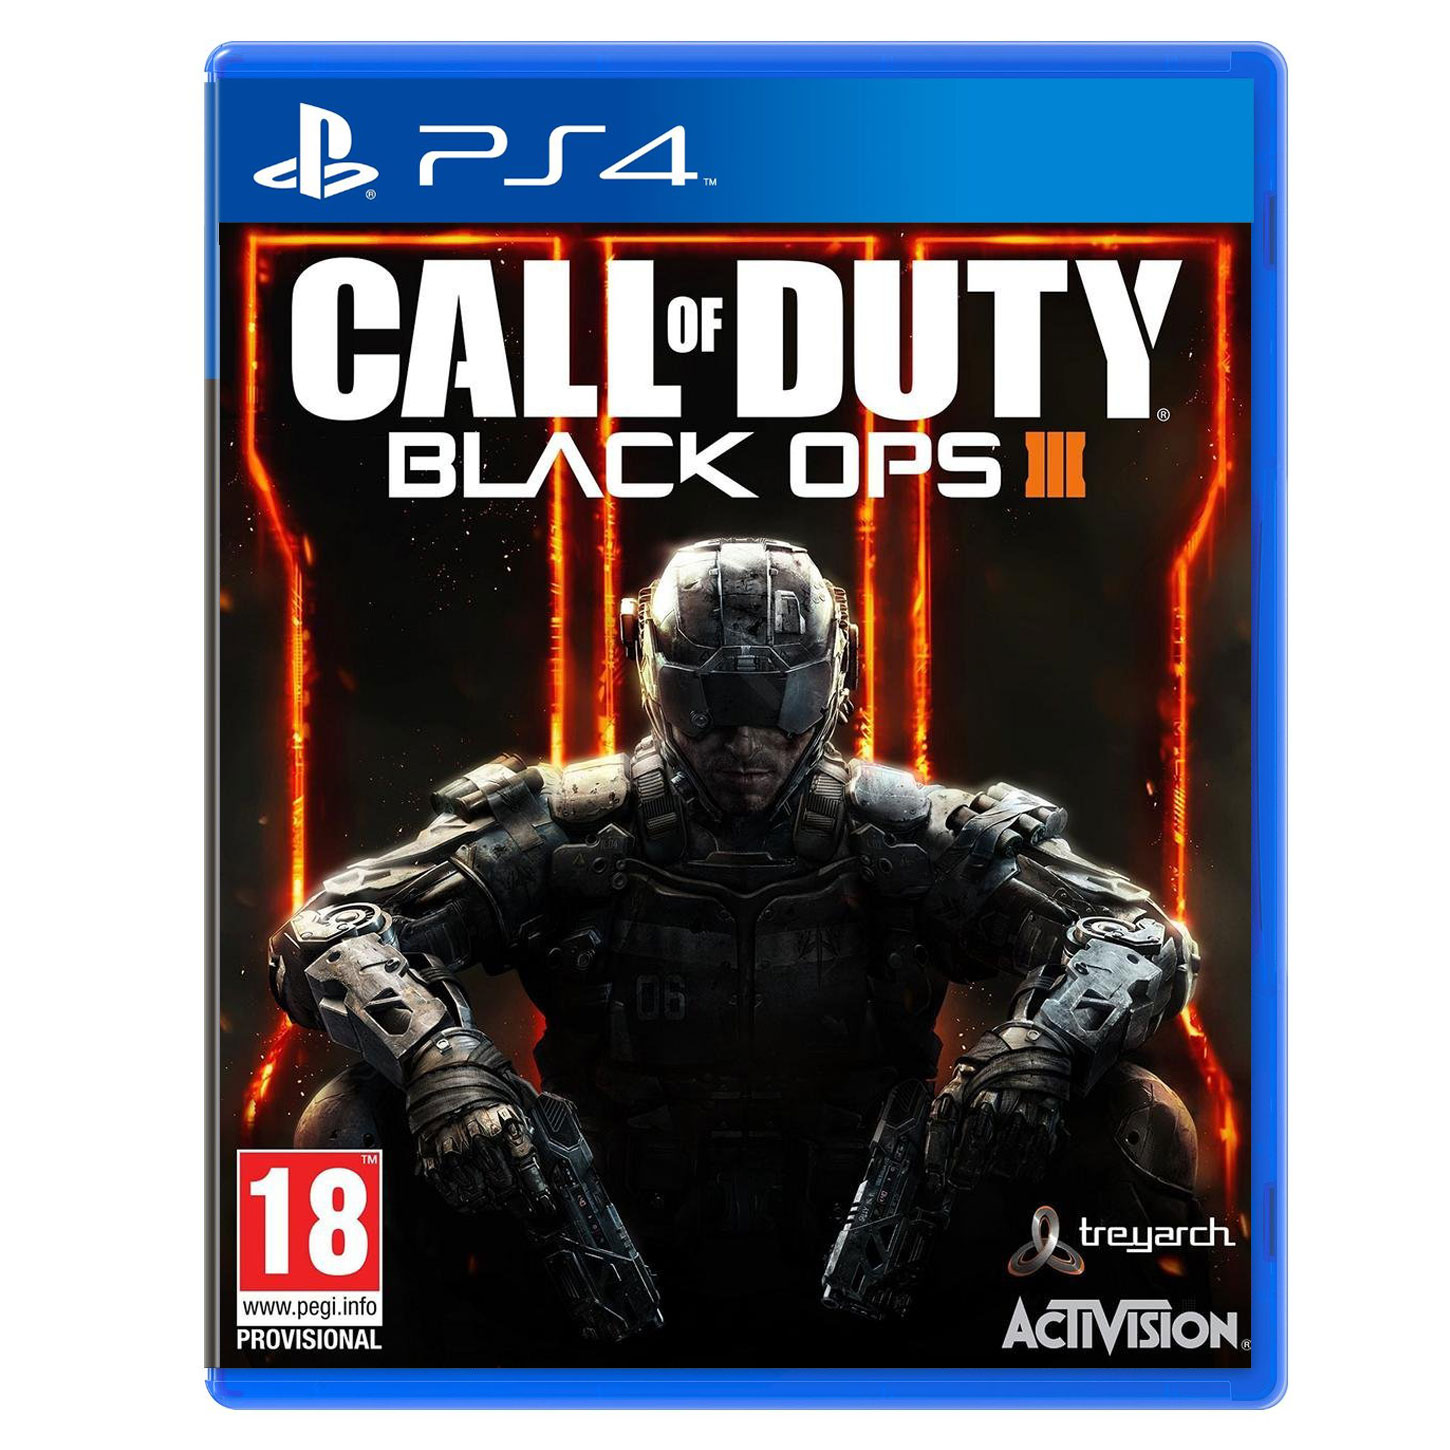 call of duty black ops iii ps4 jeux ps4 activision. Black Bedroom Furniture Sets. Home Design Ideas